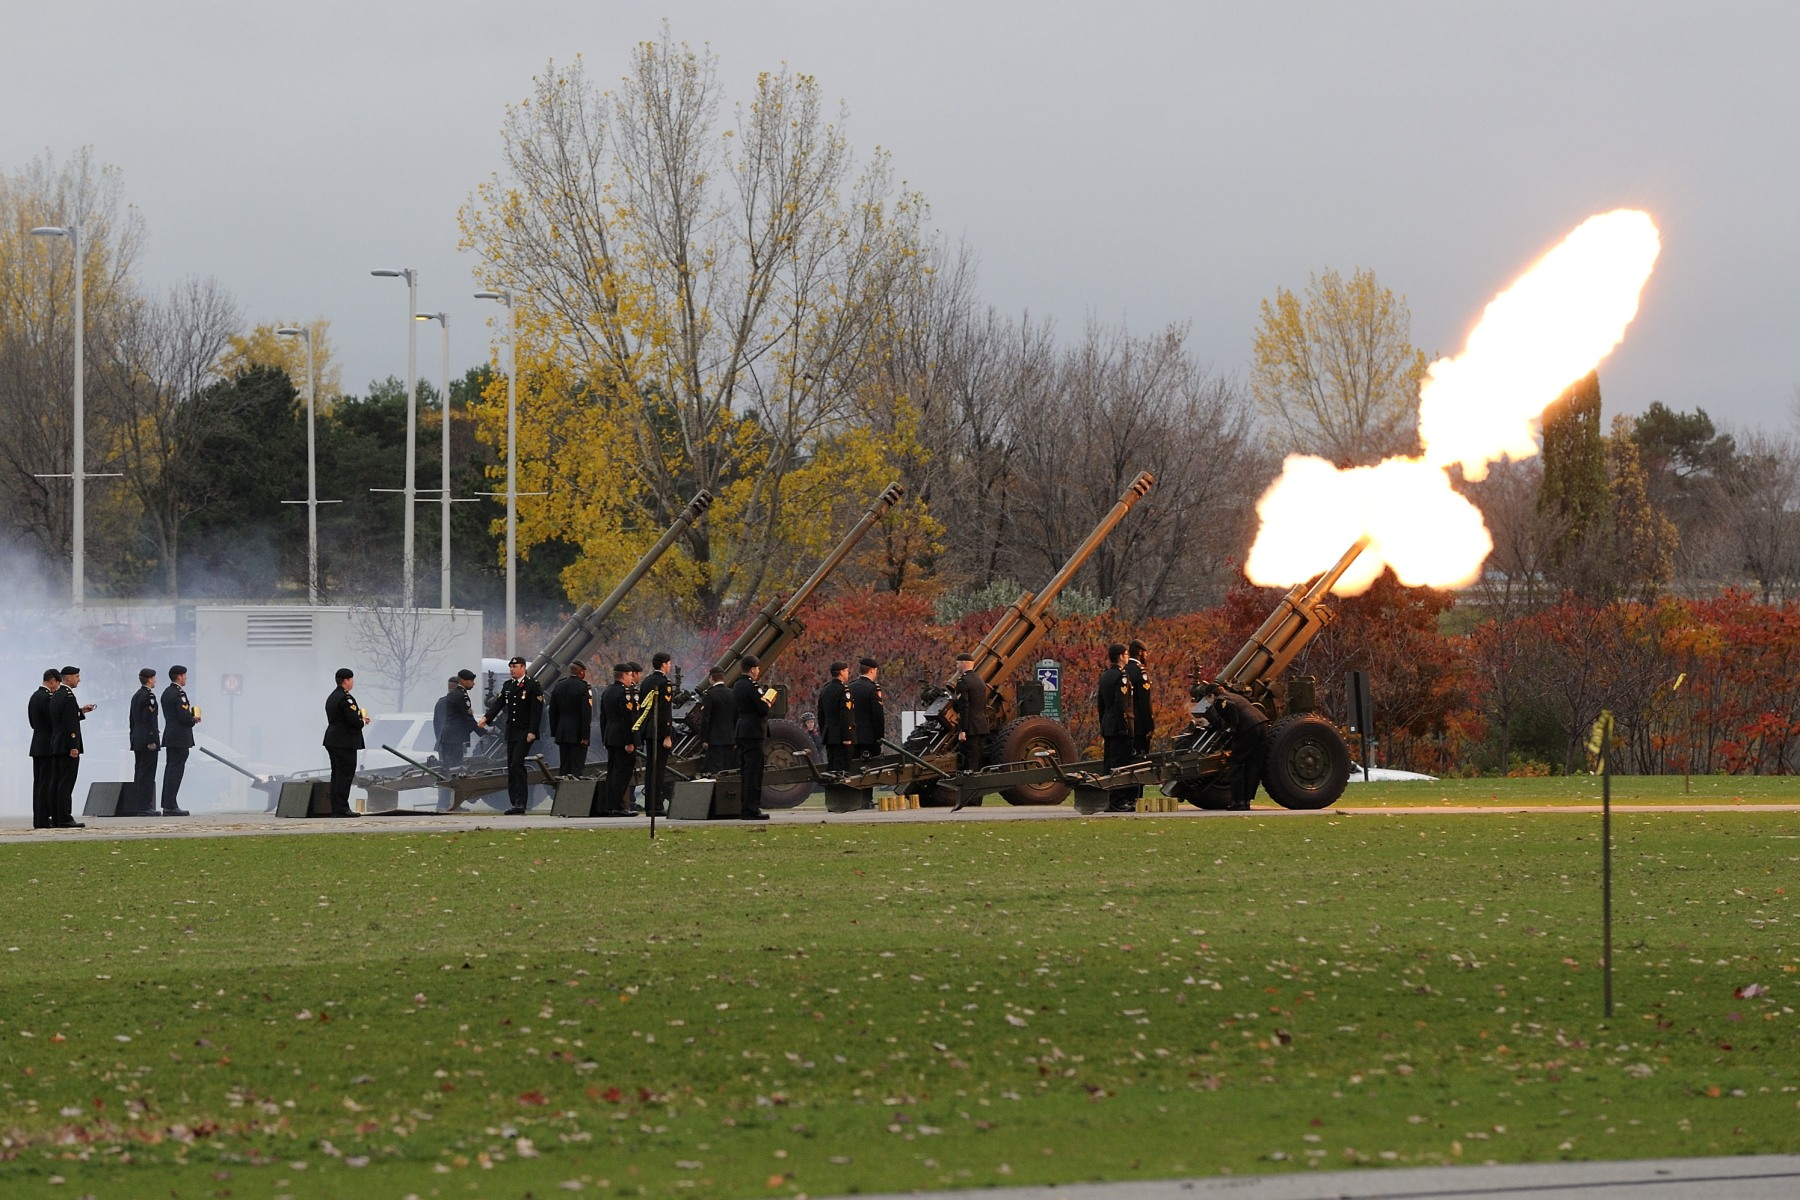 A 21-gun salute was fired during the royal salute.